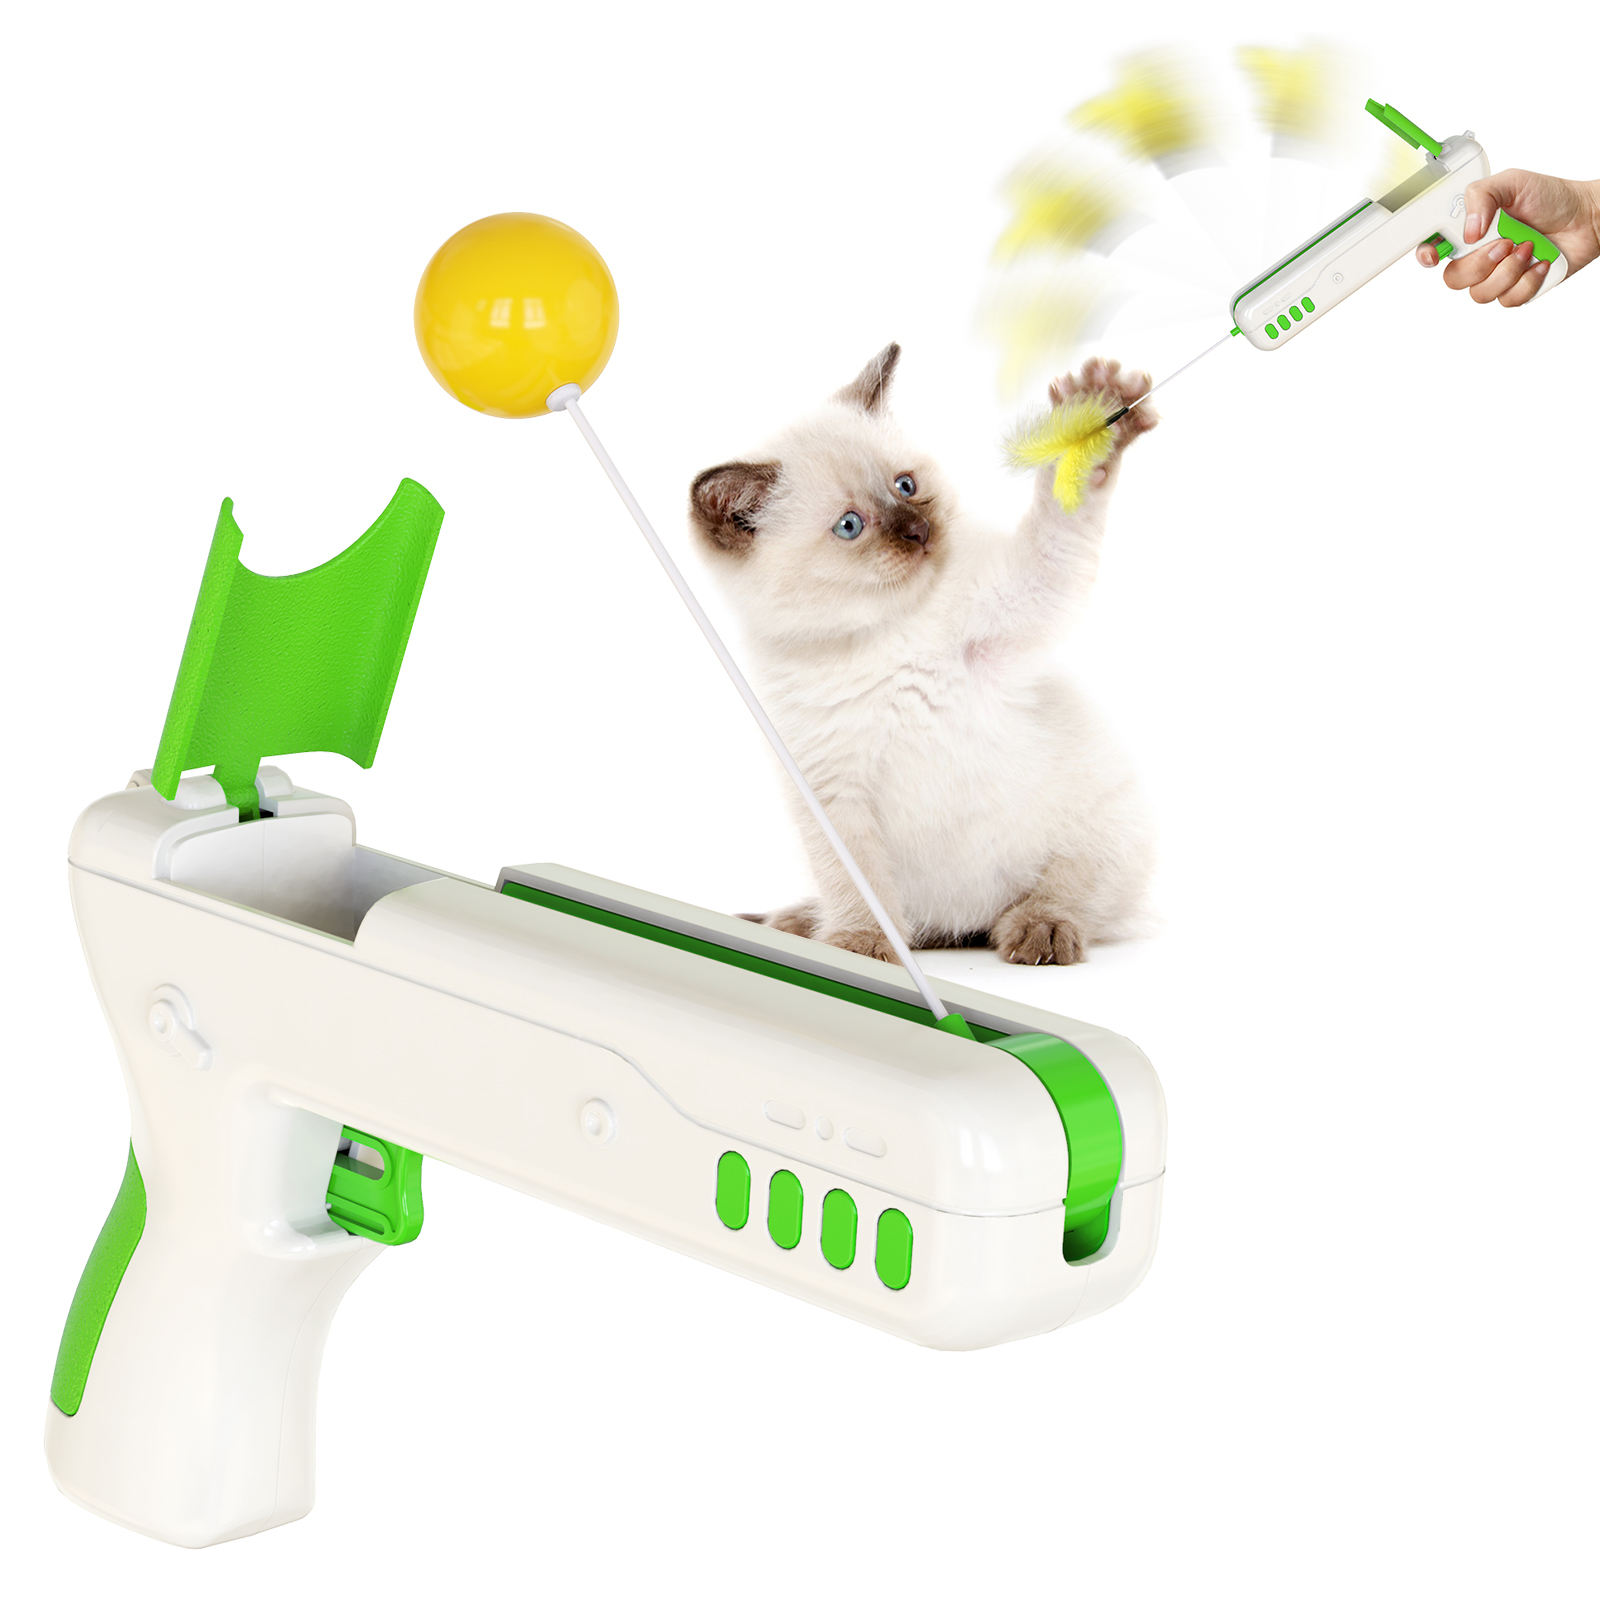 2020 Amazon wish best-selling products Hot sale Good quality pet toys Funny cat stick Will rebound